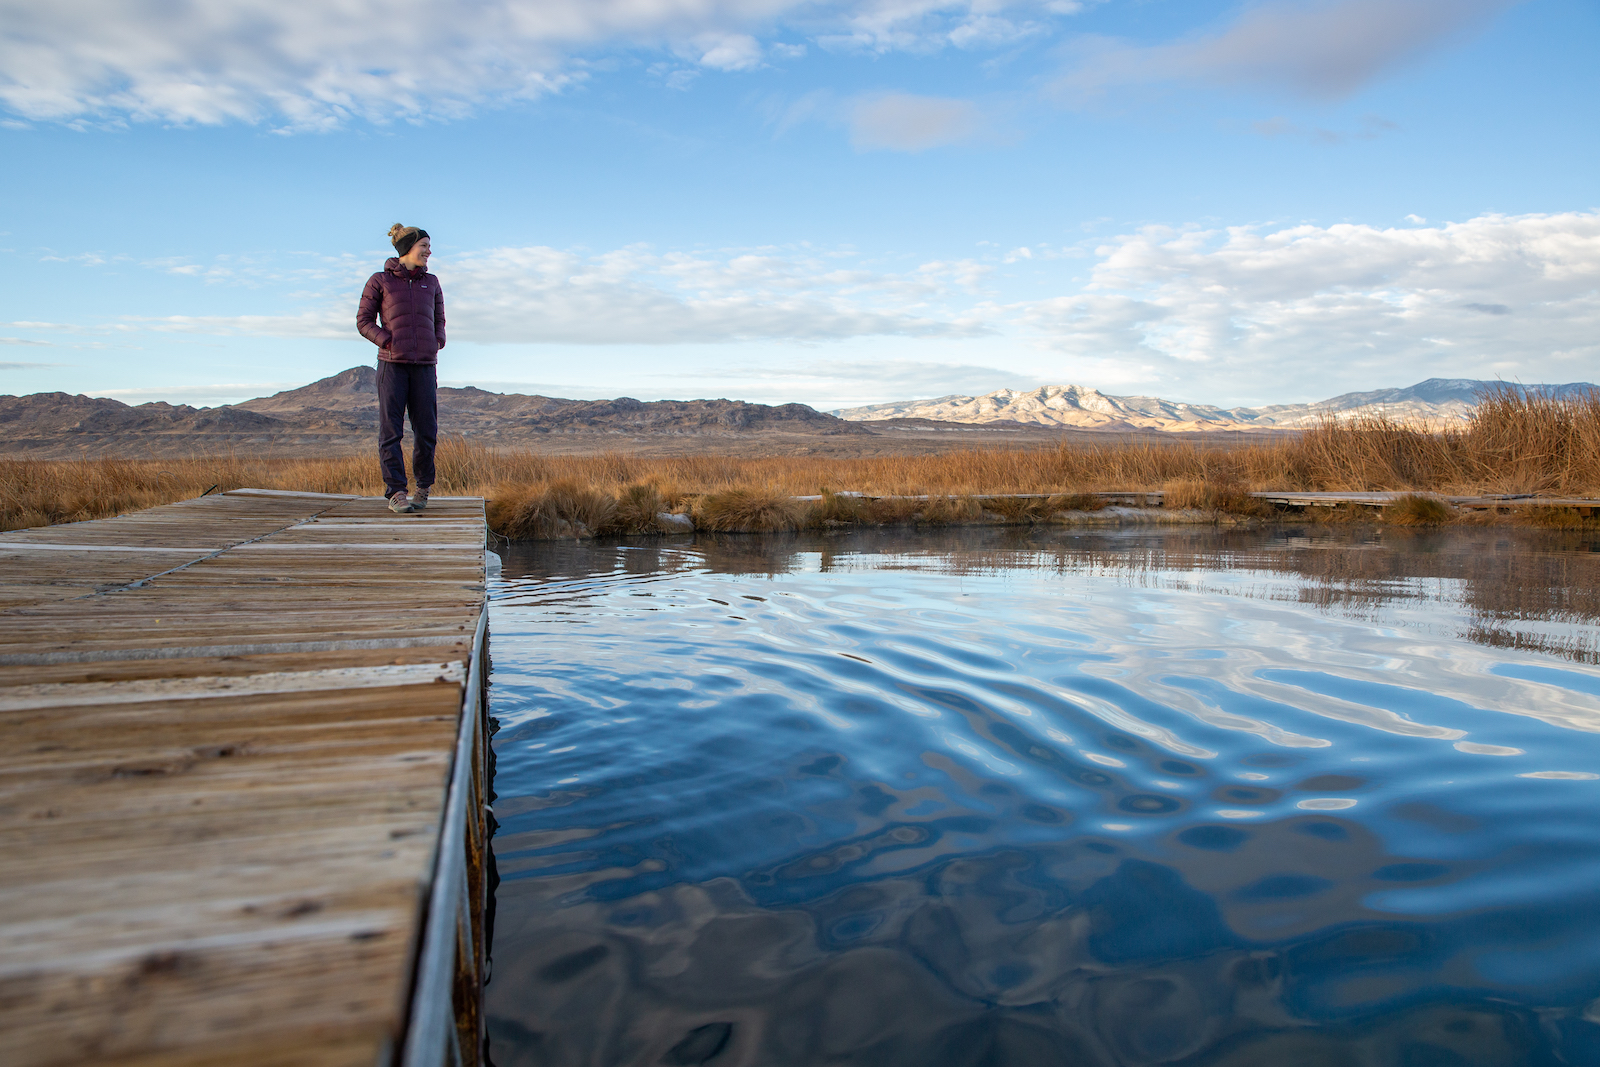 Woman at edge of Blue Lake in Cowboy Country, Nevada